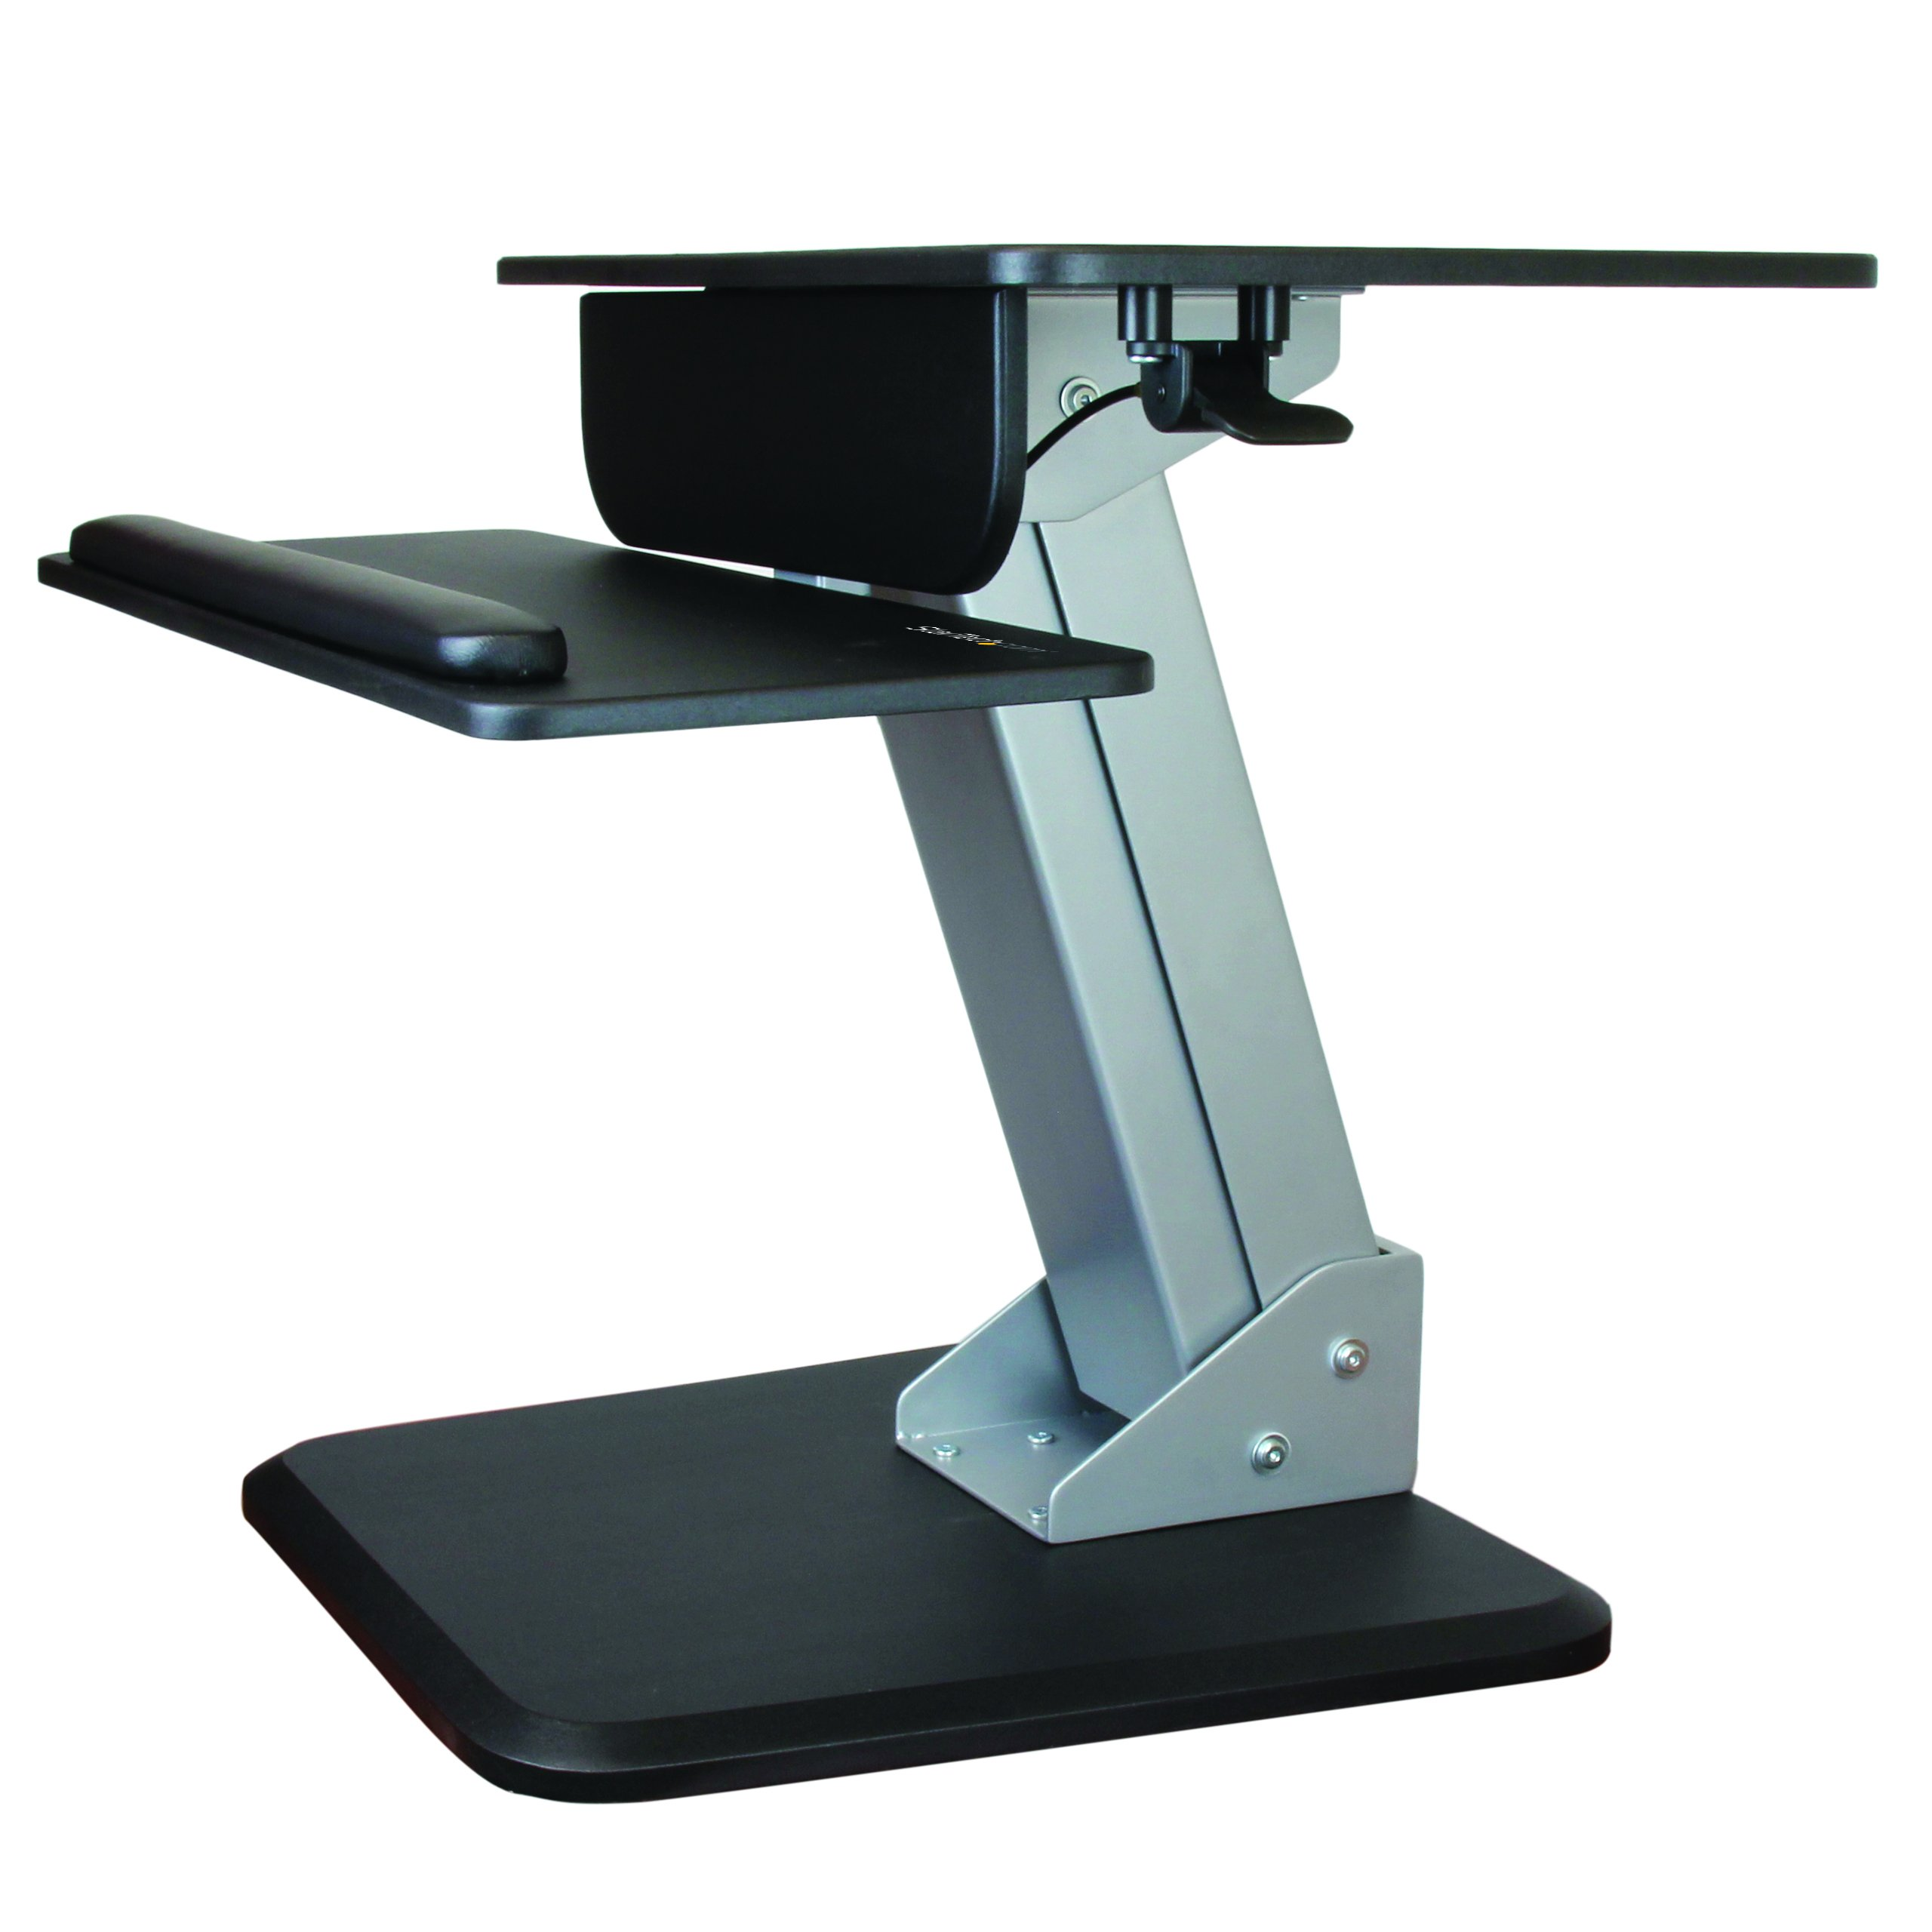 StarTech.com Height Adjustable Standing Desk Converter - Sit Stand Desk with One-Finger Adjustment - Ergonomic Desk by StarTech